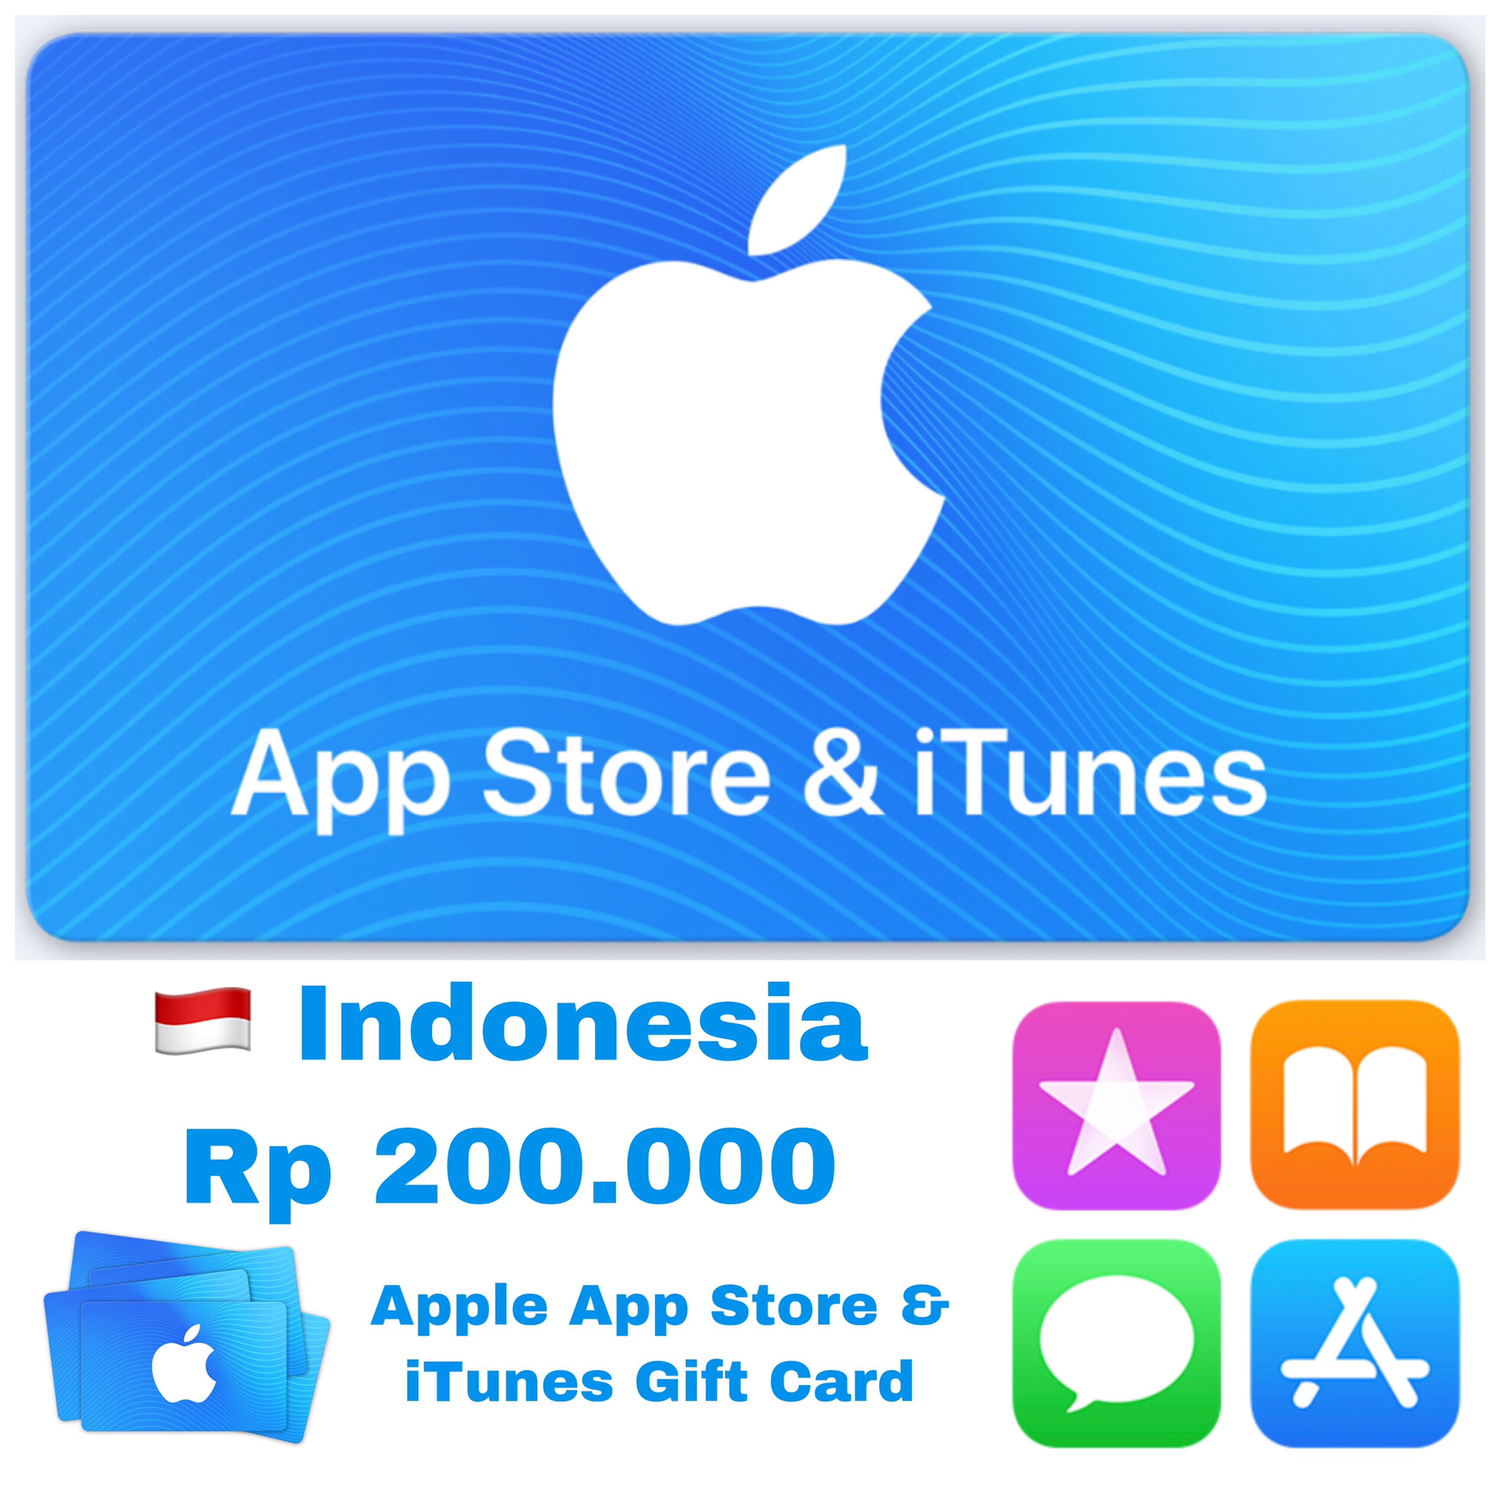 Apple App Store & iTunes Gift Card Indonesia 200.000